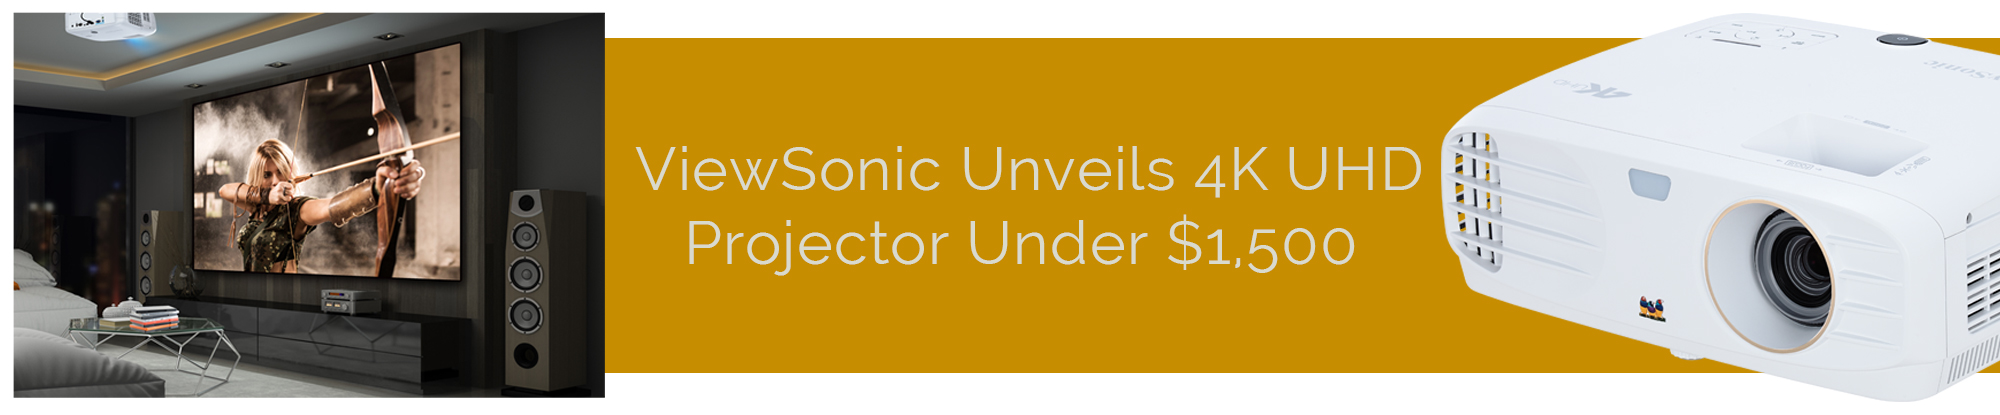 ViewSonic Shakes Up 4K Projector Market with PX727-4K for Under $1500;  Offers HDR-Compatibility and Delivers Stunning Picture Quality